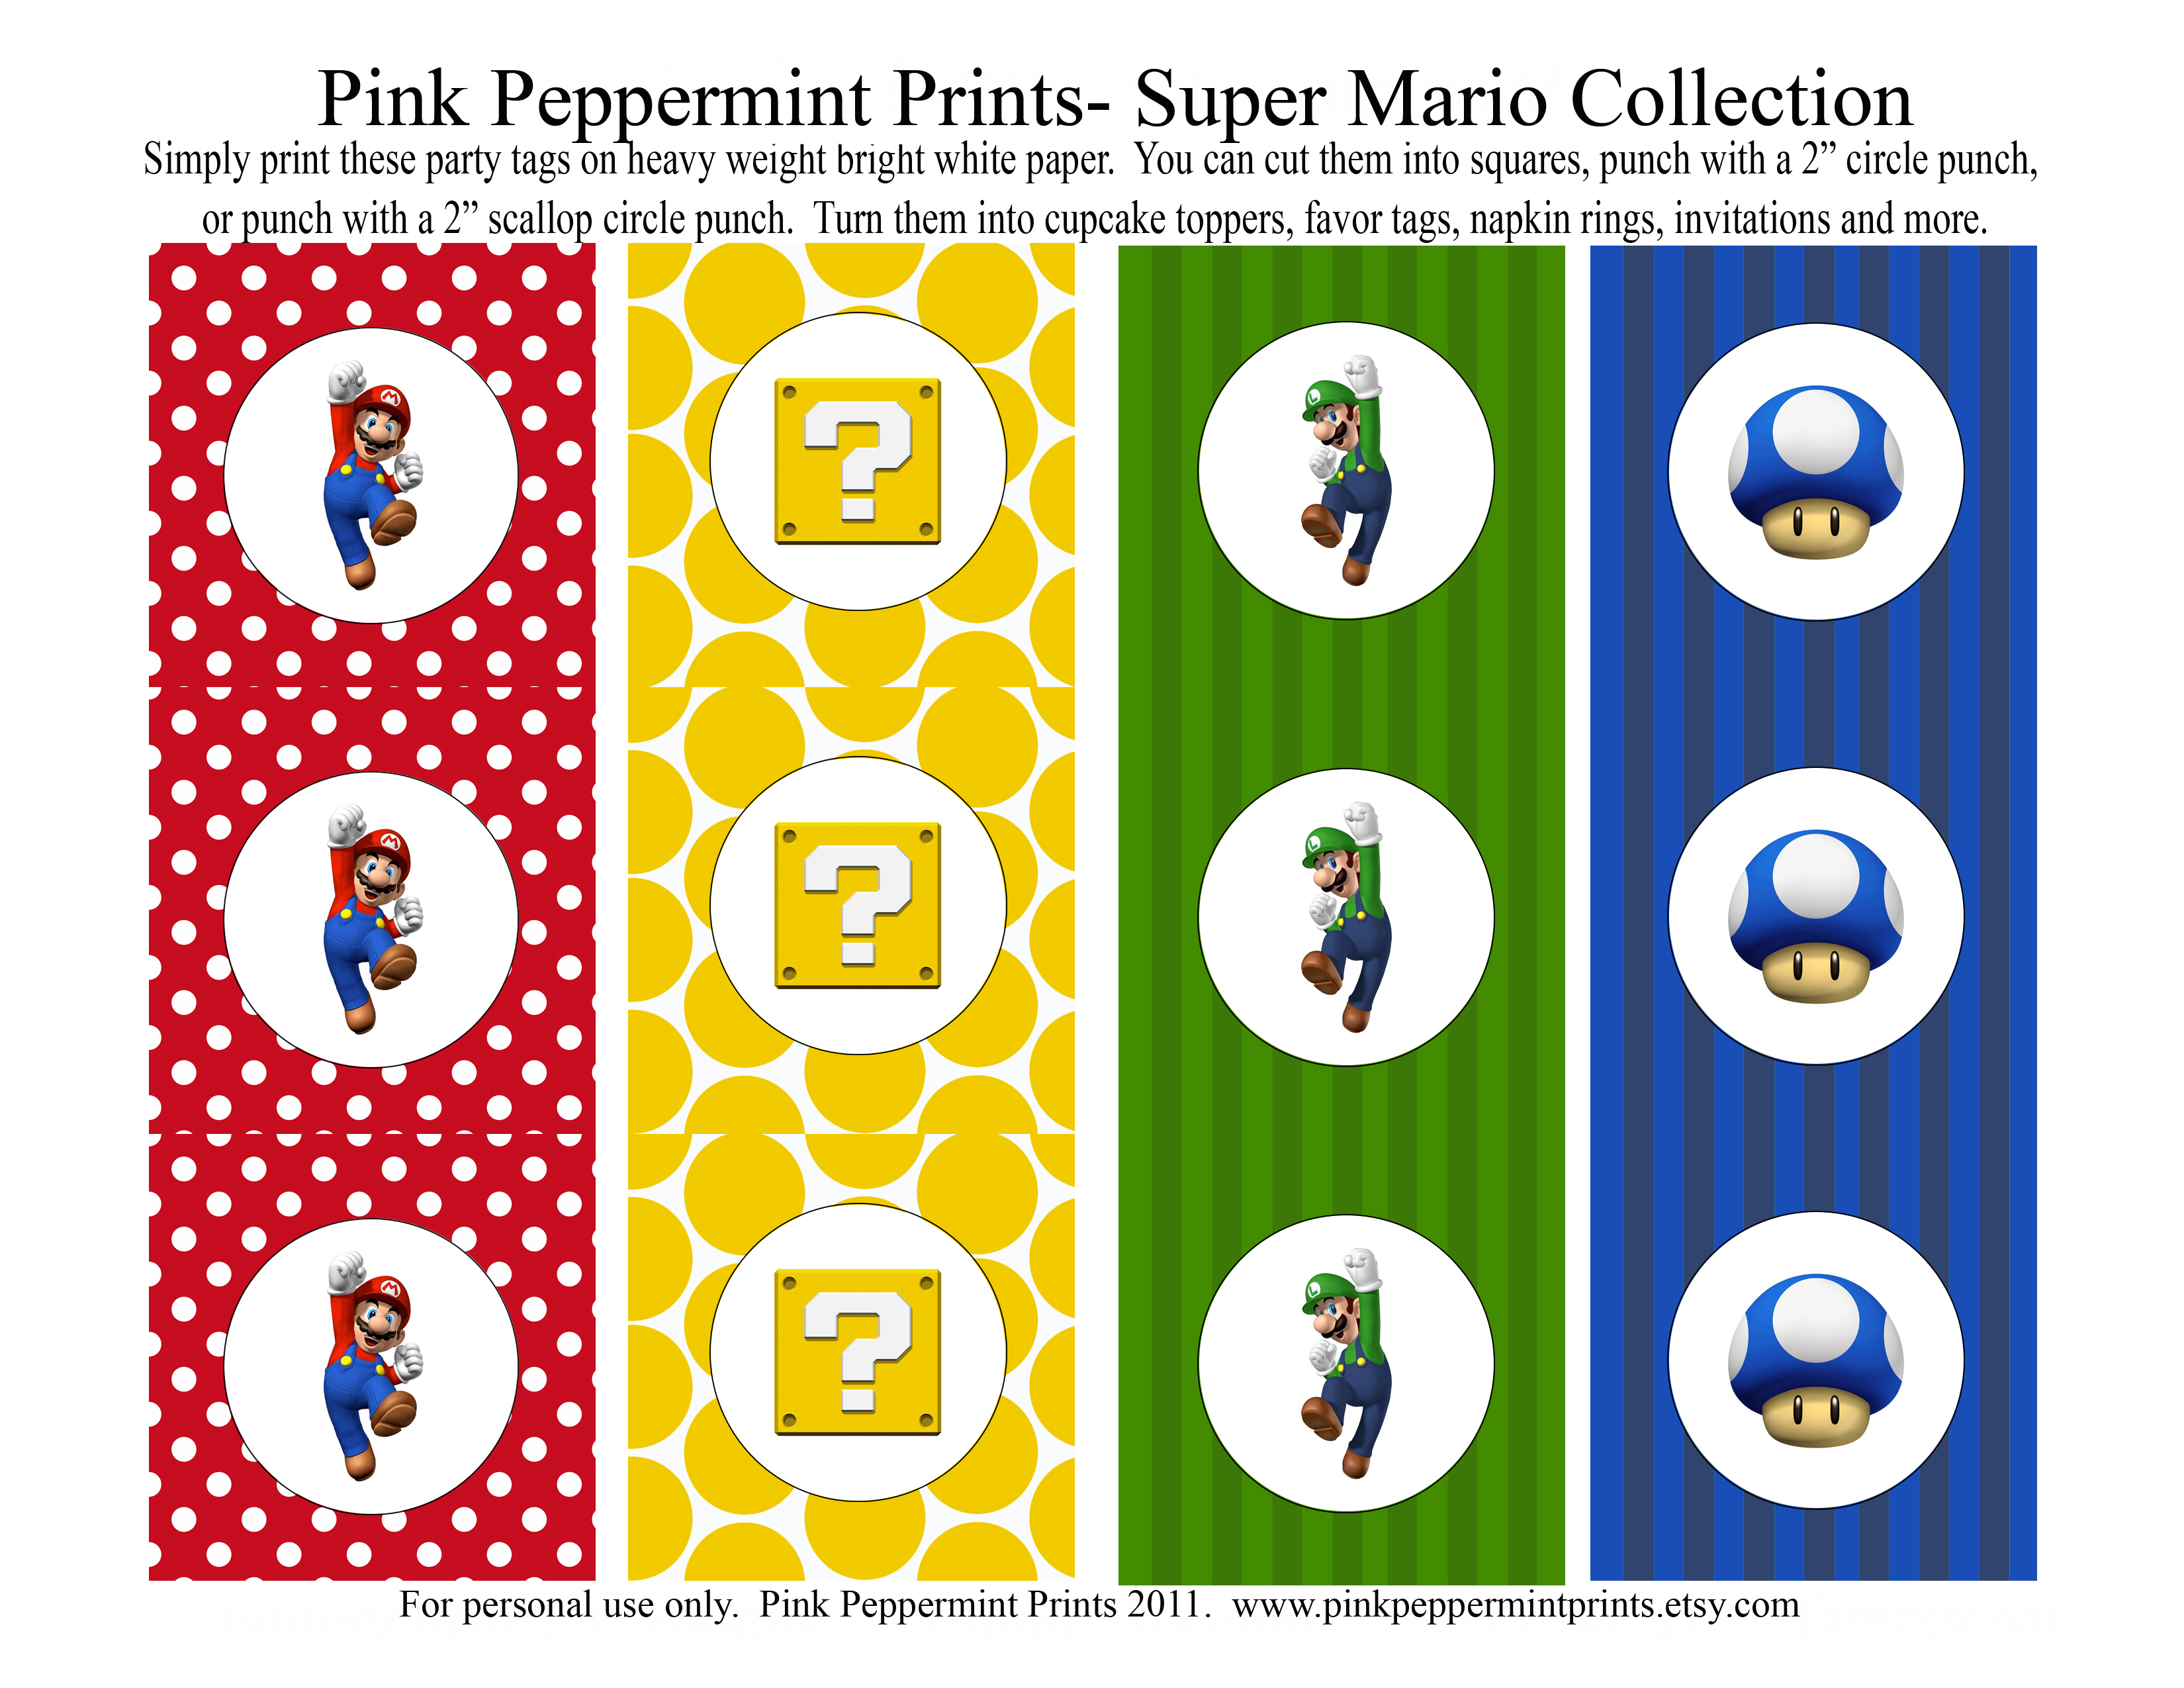 printable party sets pink peppermint prints u0026 parties party